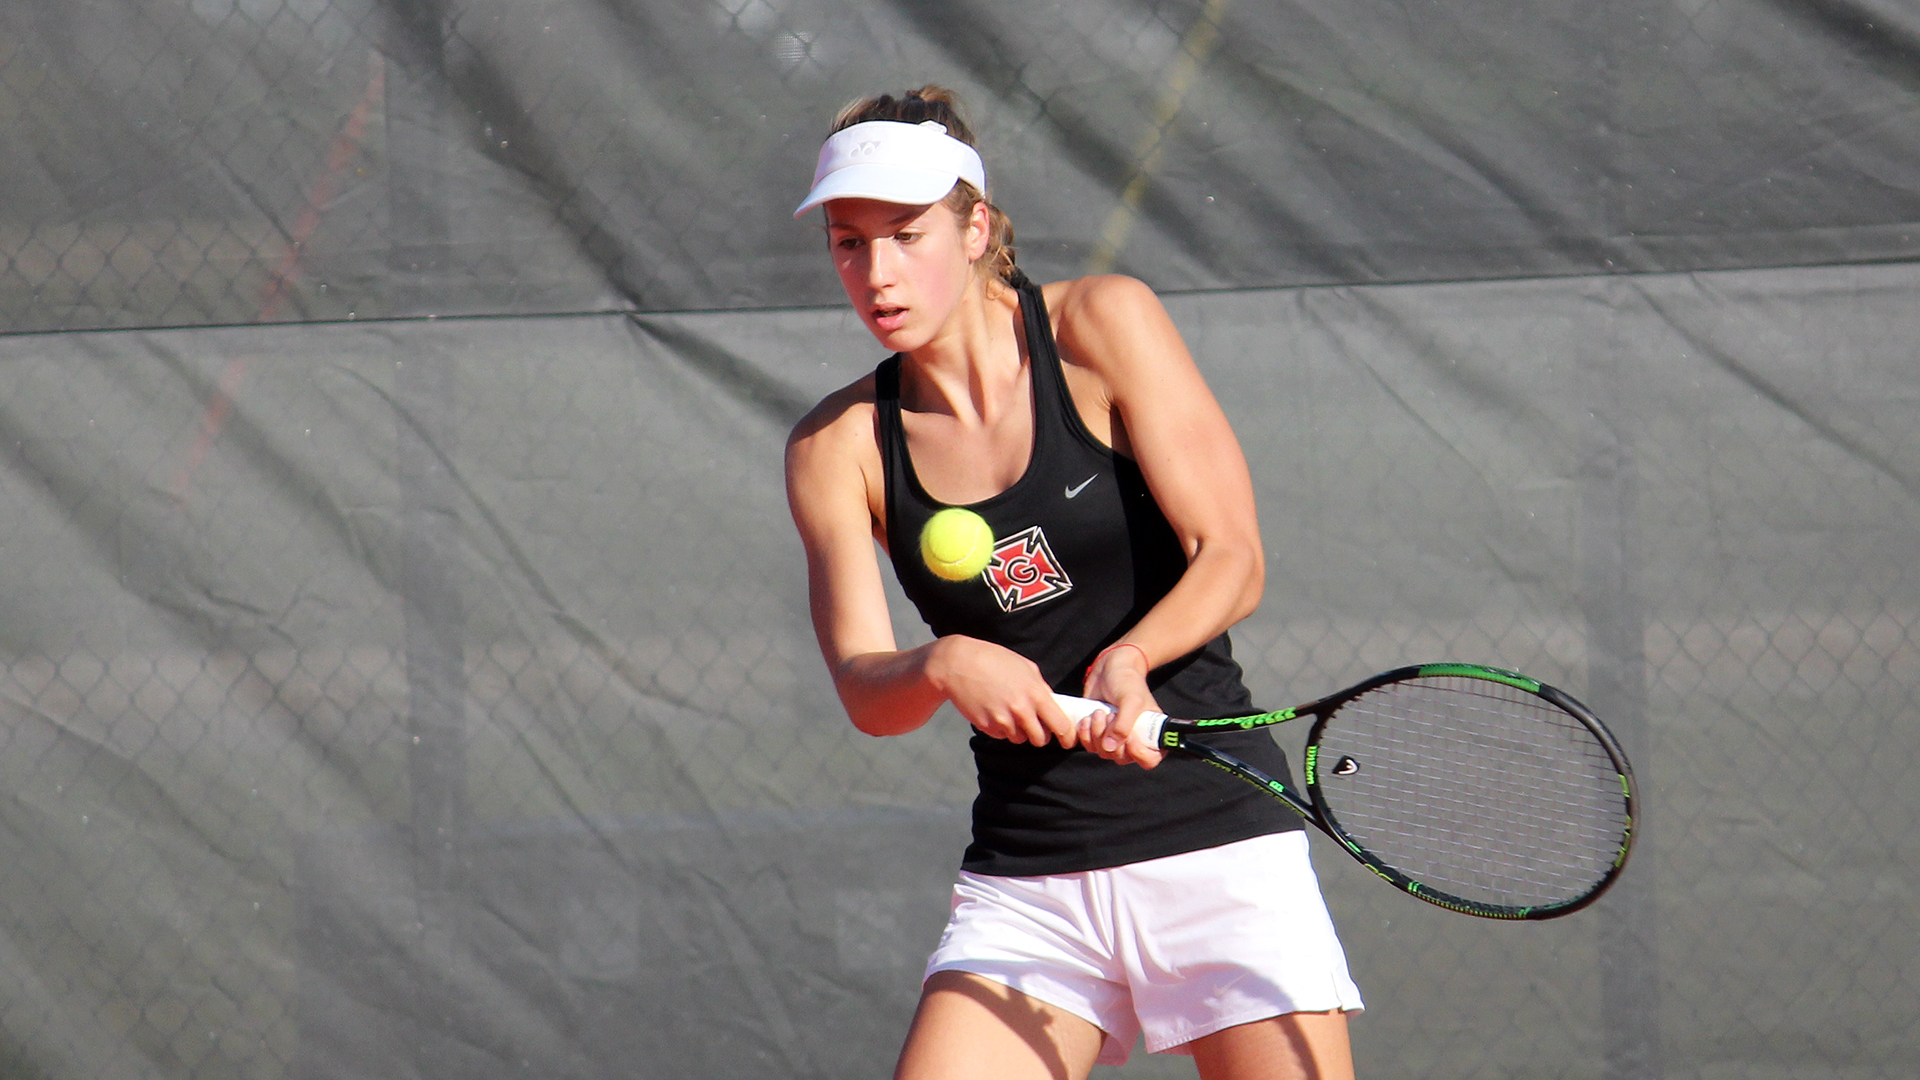 Grinnell Grinnell Womens College Tennis - Grinnell News, Scores, and ...